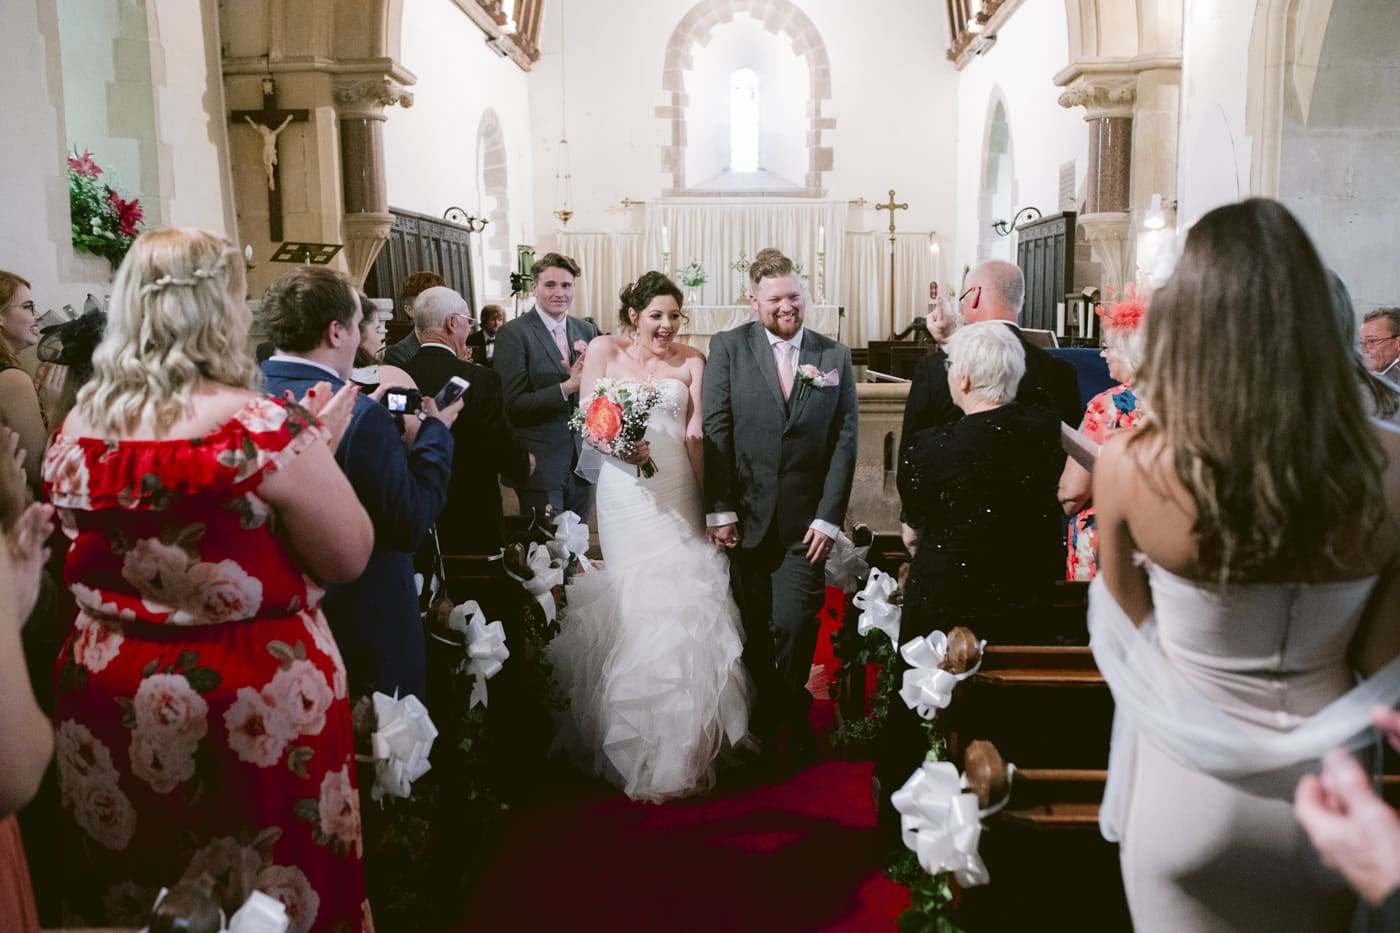 Bride and Groom Walking Down the Aisle Together in Church Main Hall Portrait